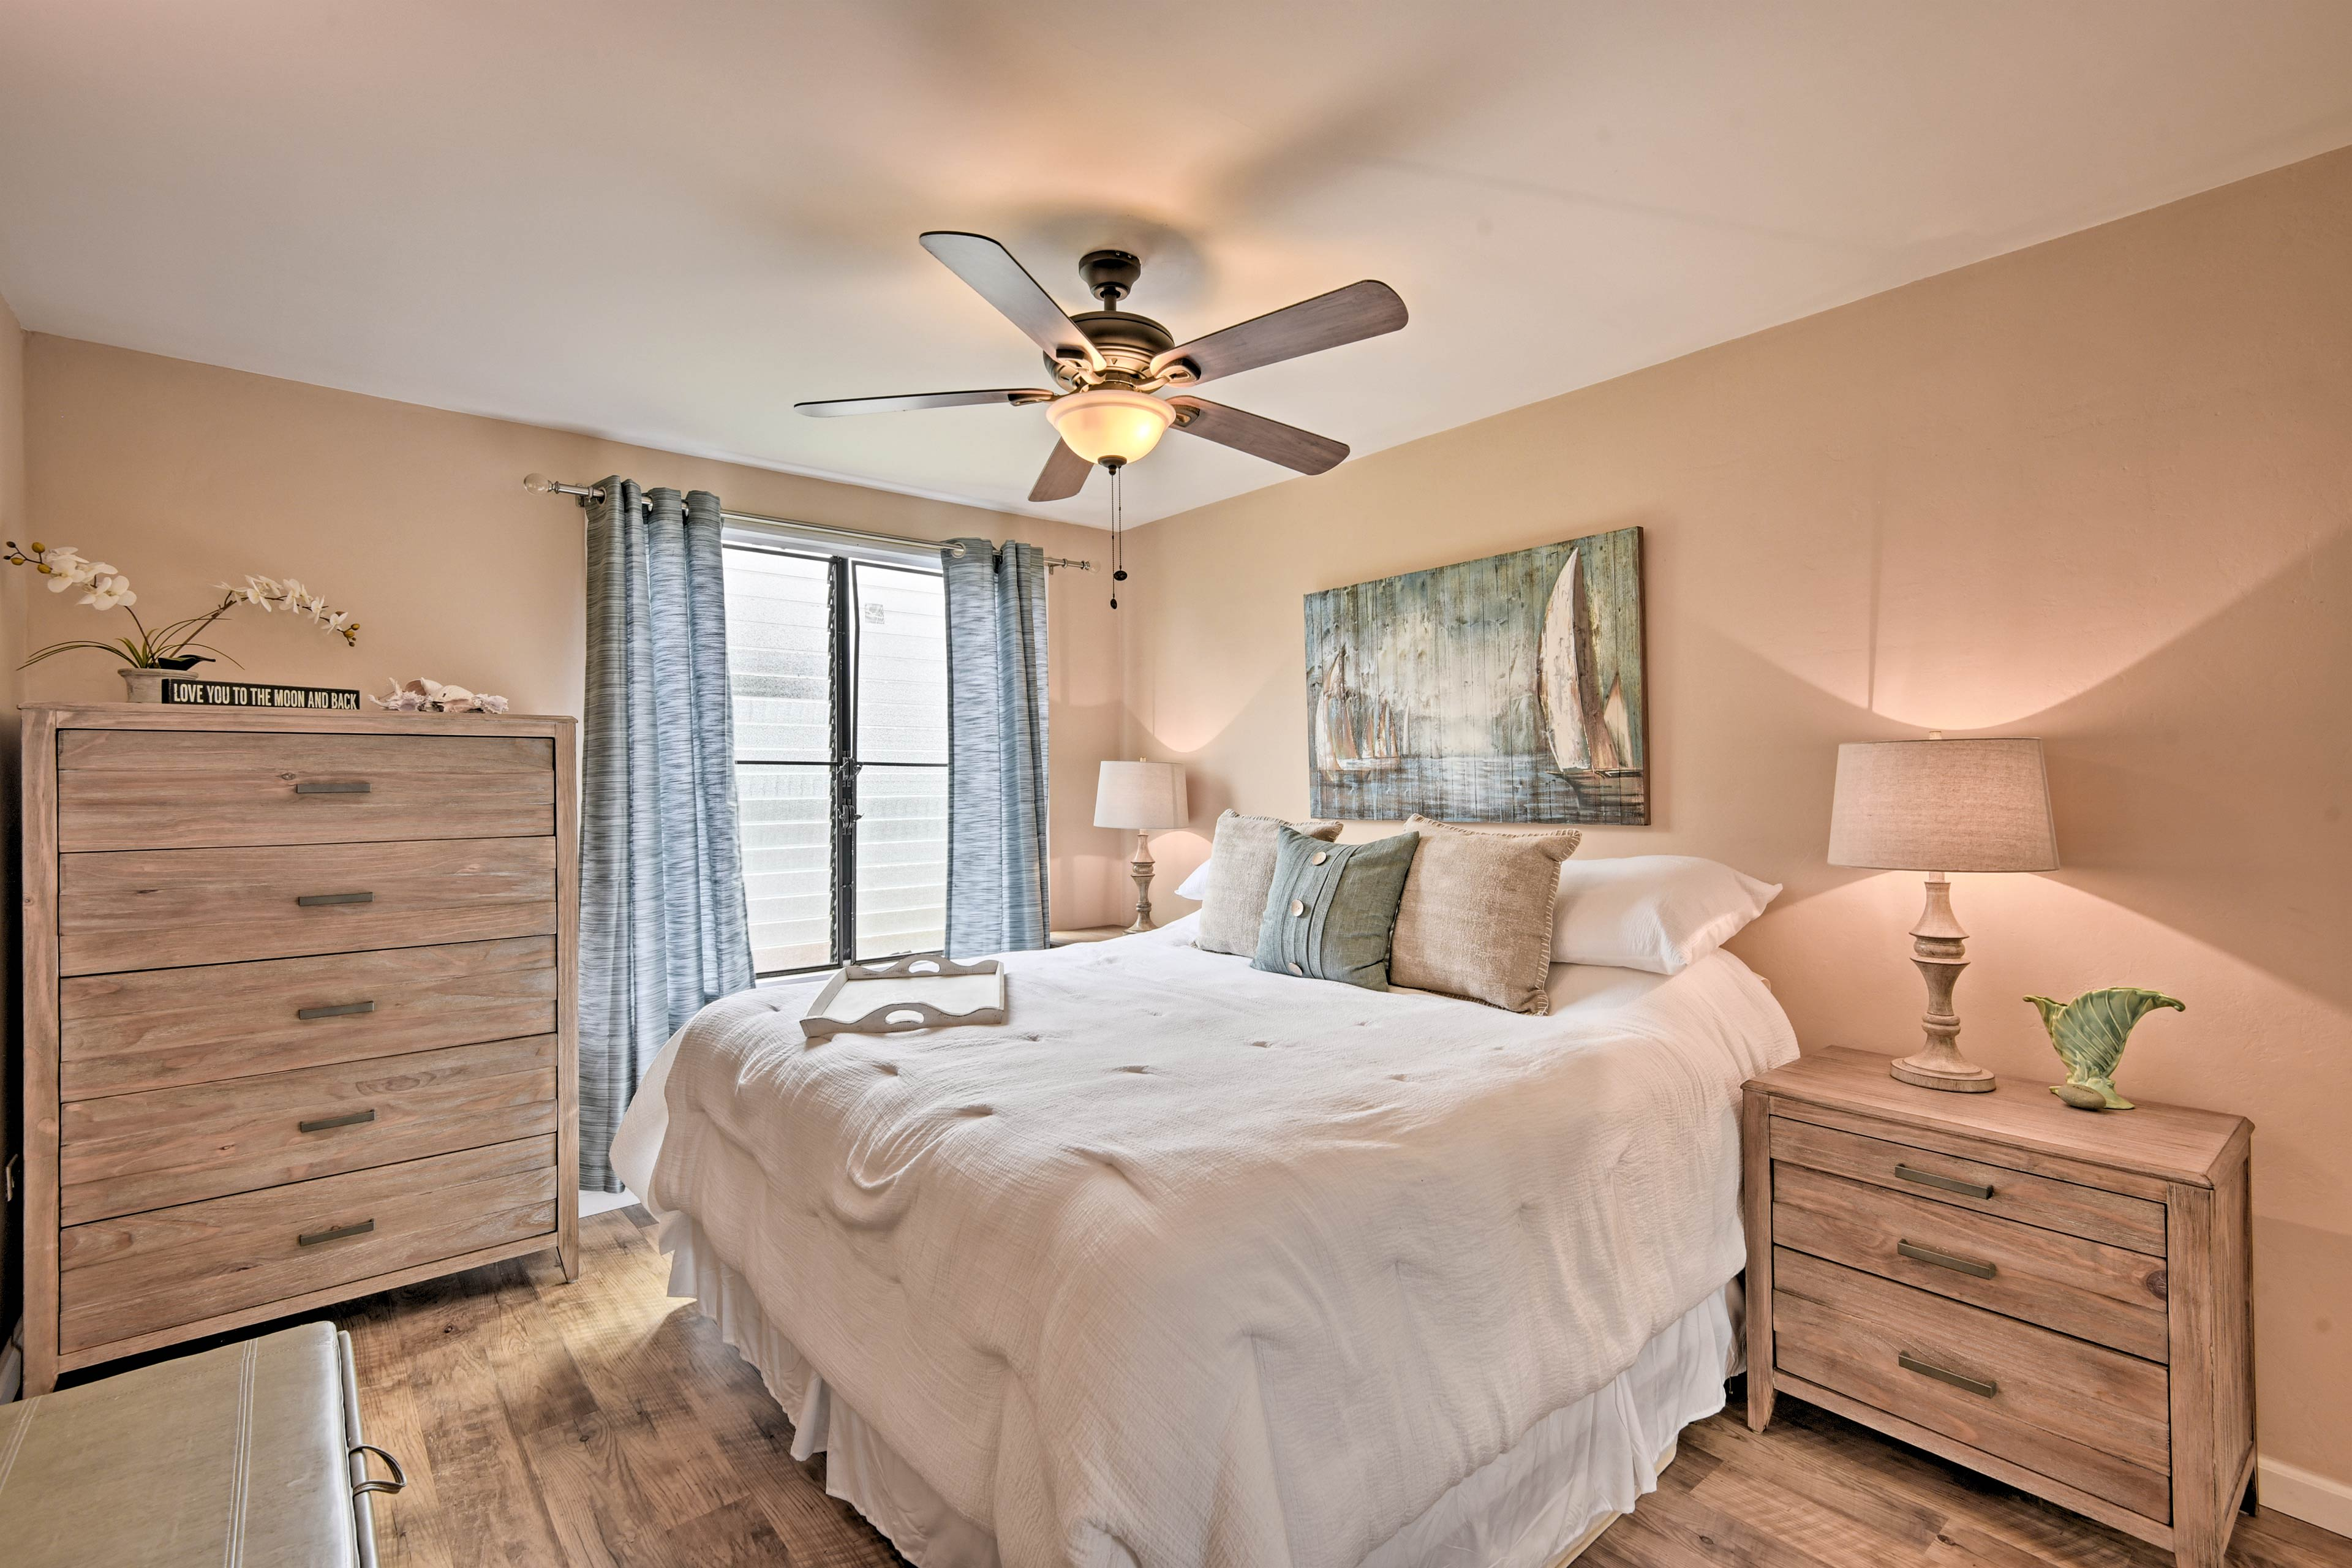 Take solace in the cozy bedroom for privacy.